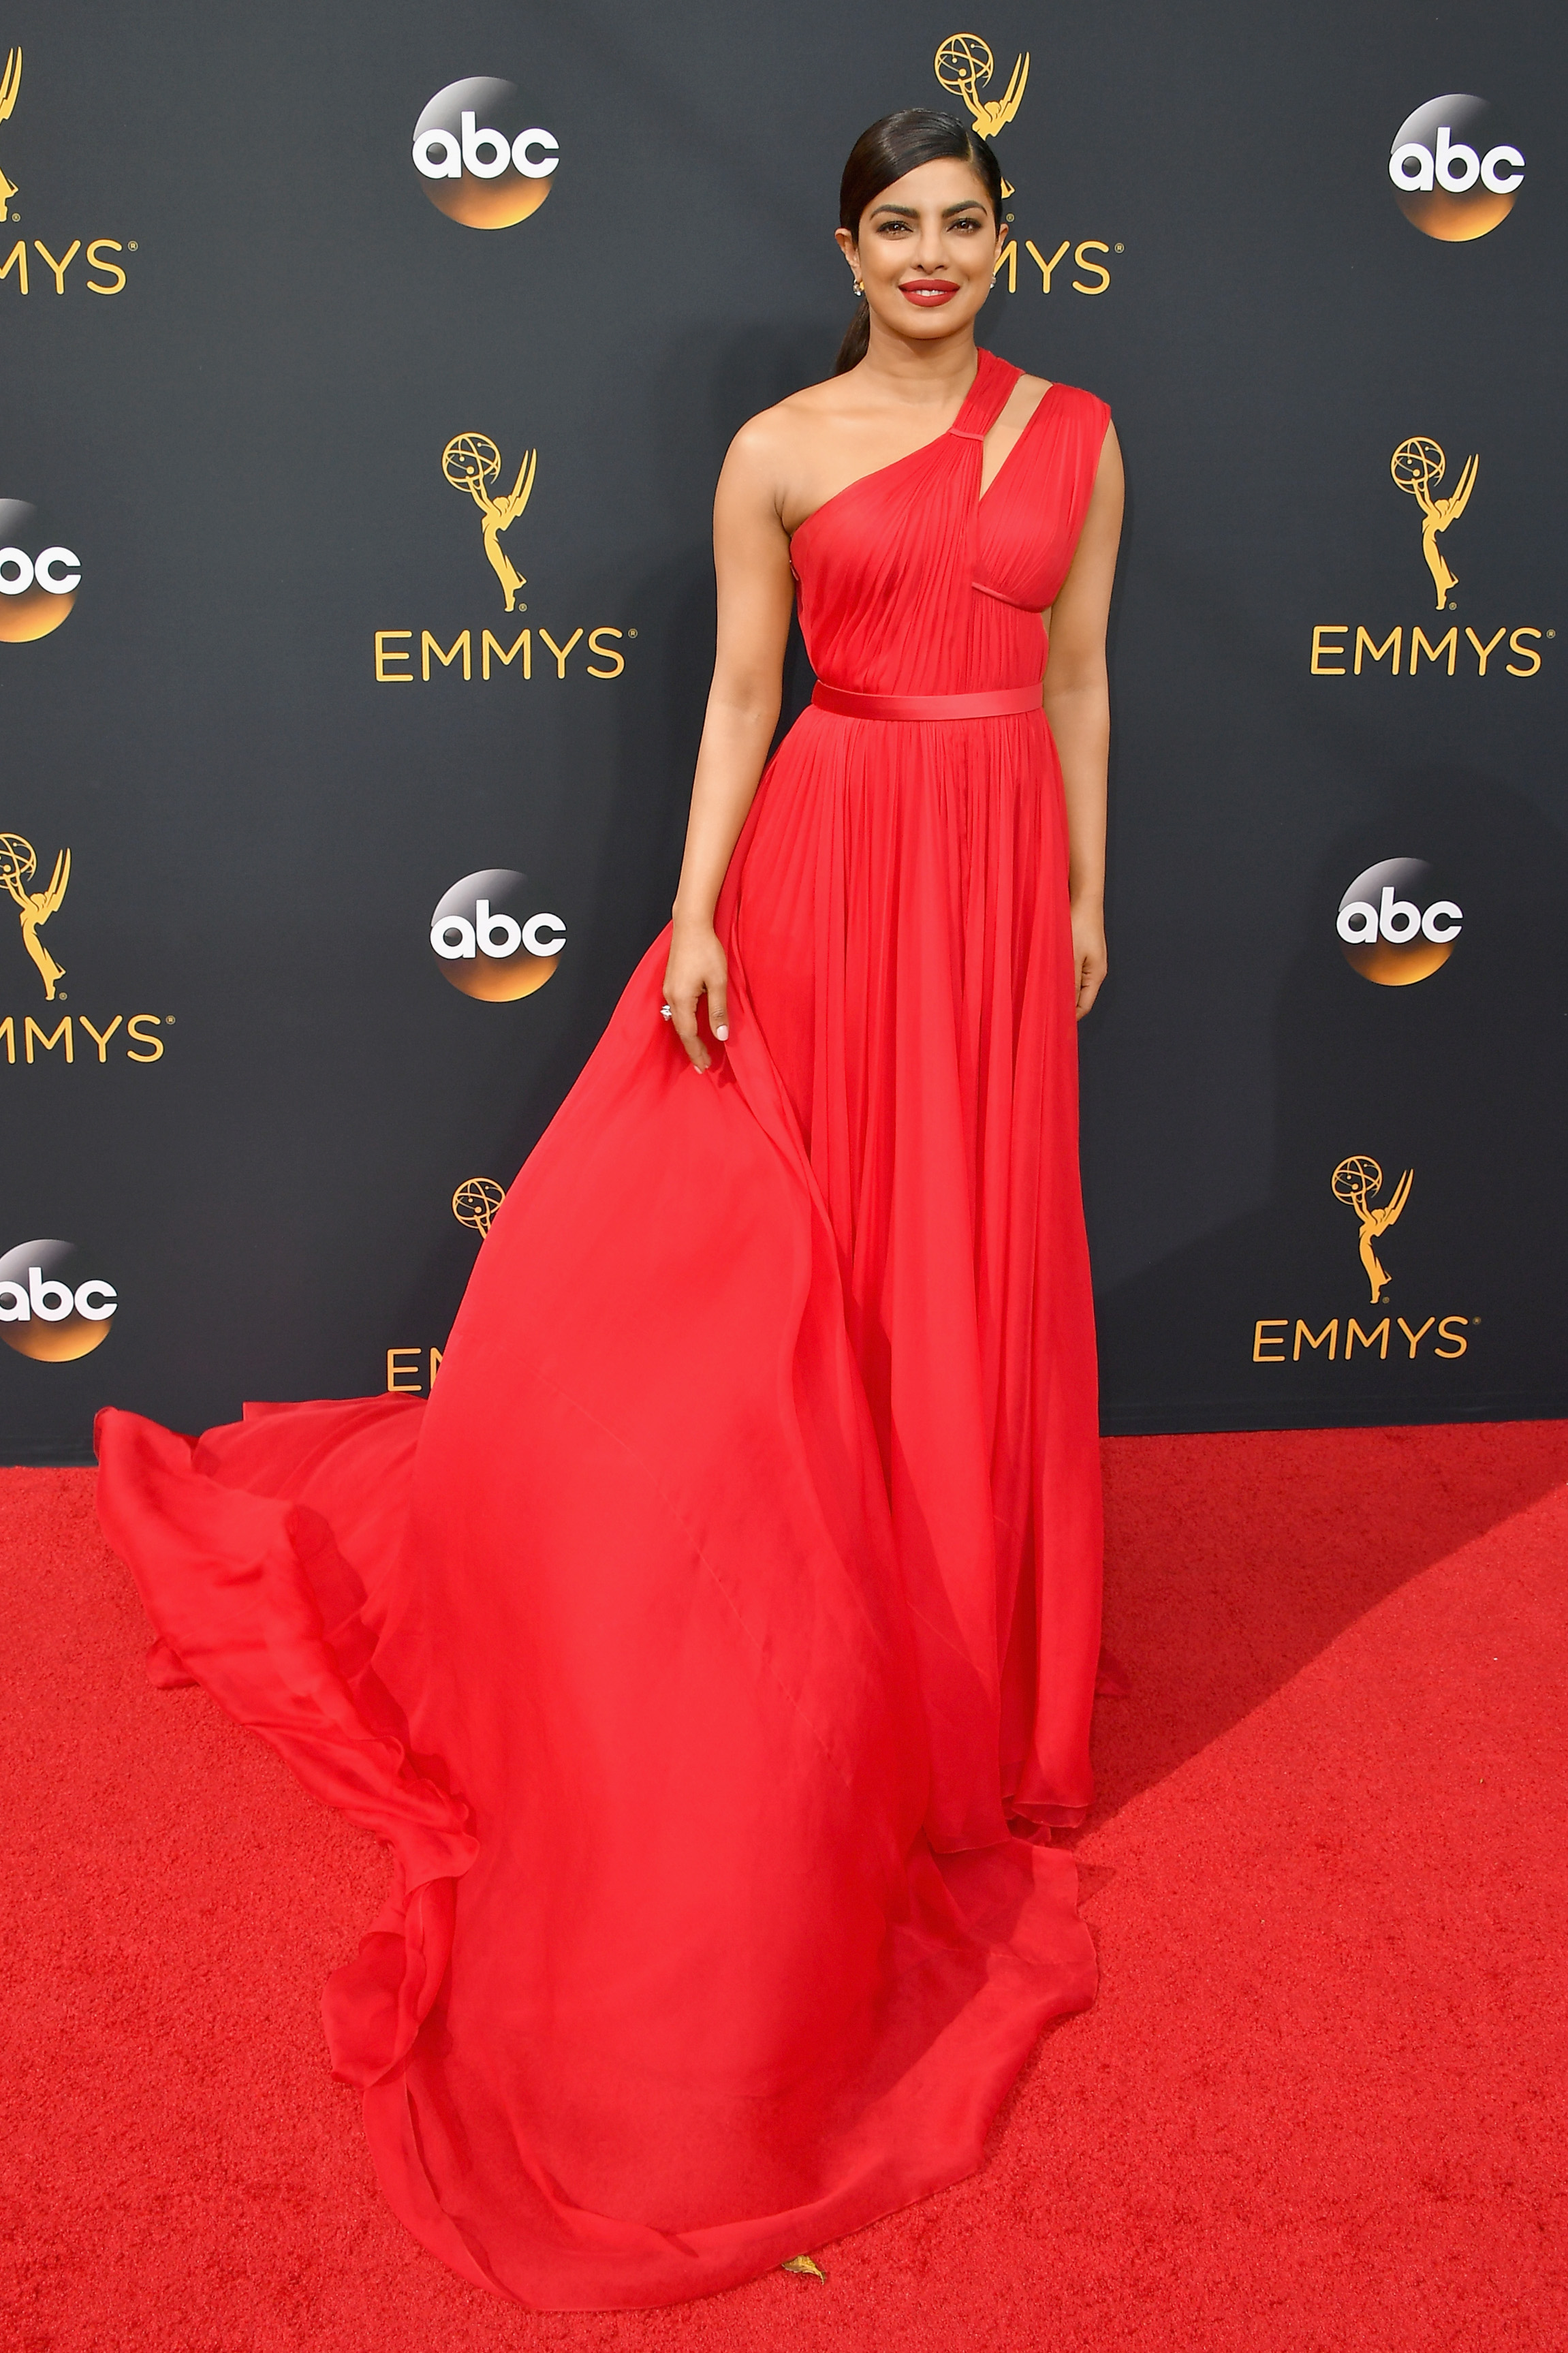 Priyanka Chopra arrives at the 68th Annual Primetime Emmy Awards at Microsoft Theater on Sept. 18, 2016 in Los Angeles.